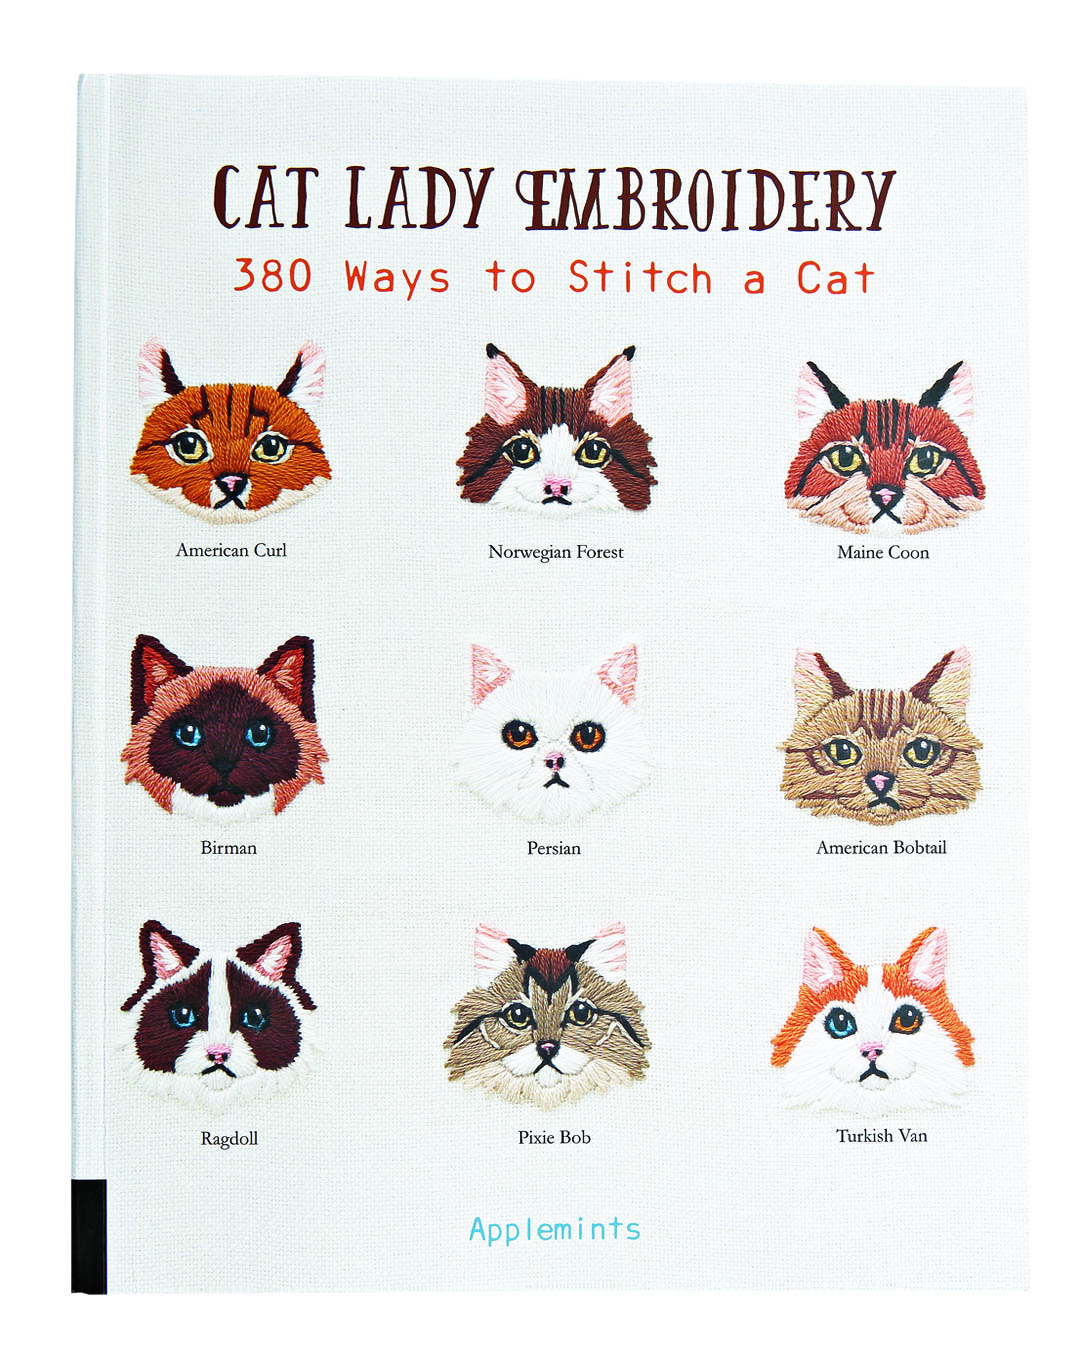 Cat Lady Embroidery book cover